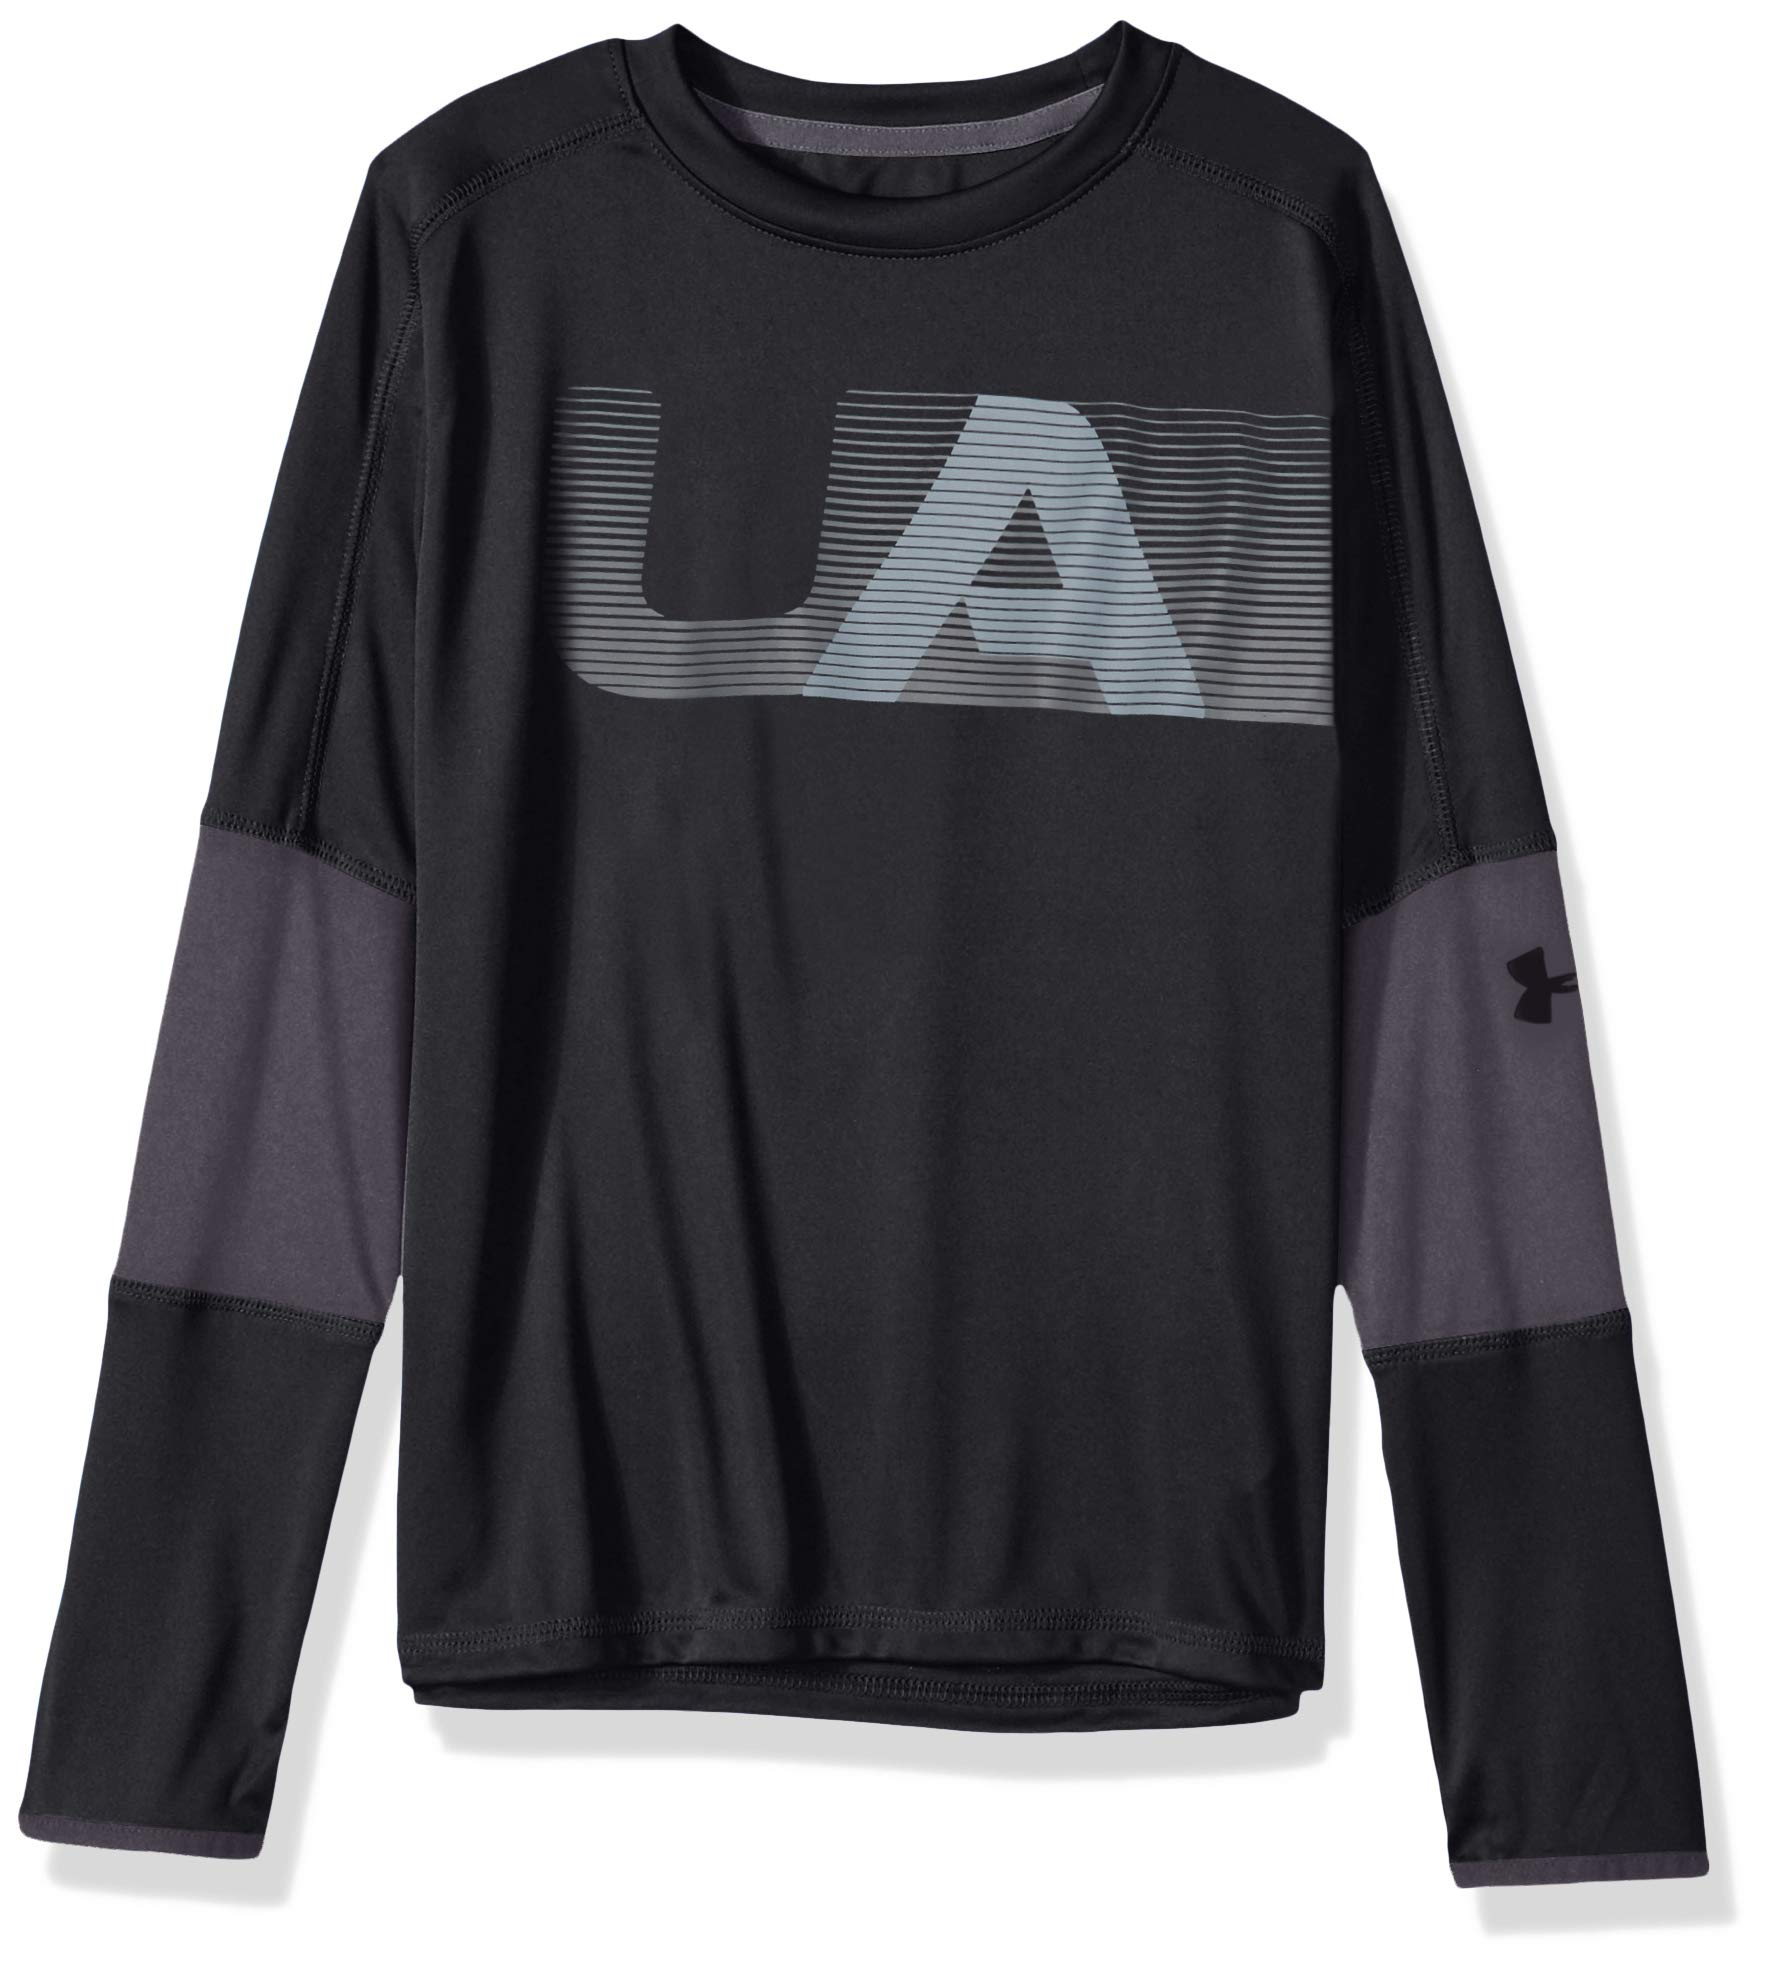 Under Armour Boys Tech Long sleeve Tee, Black (001)/Black, Youth X-Large by Under Armour